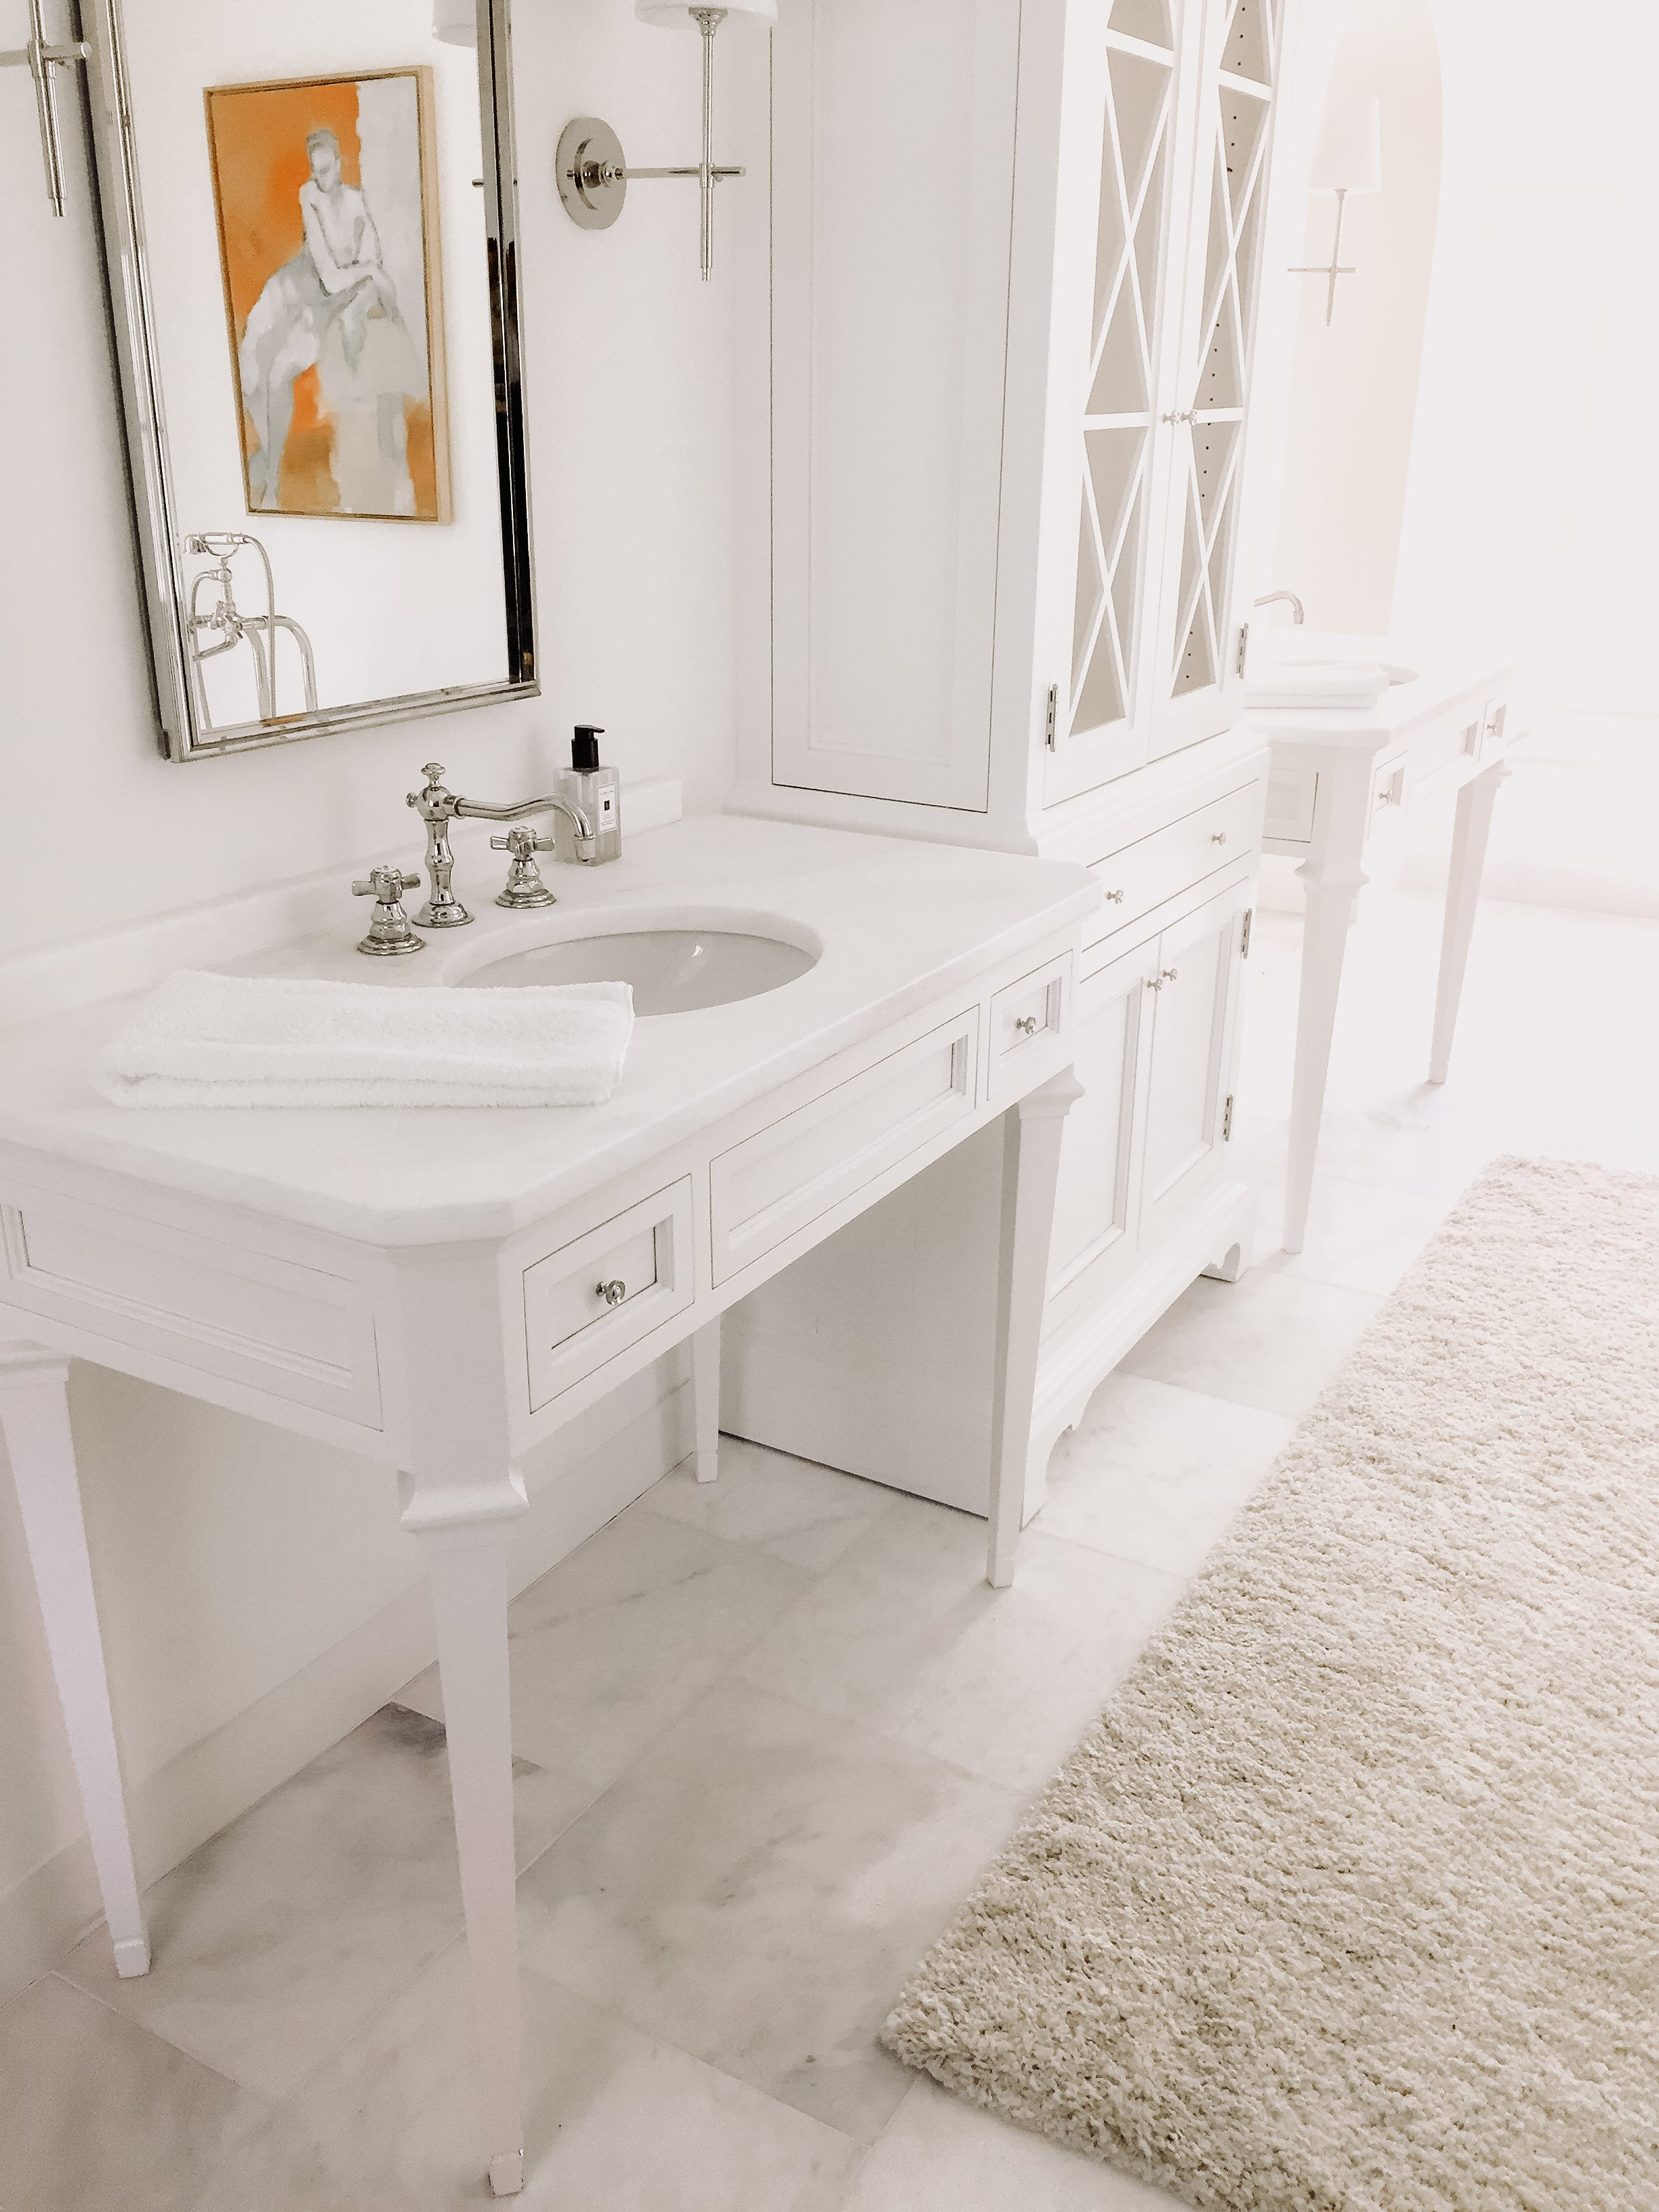 Classic White wooden double vanity with matching cabinets